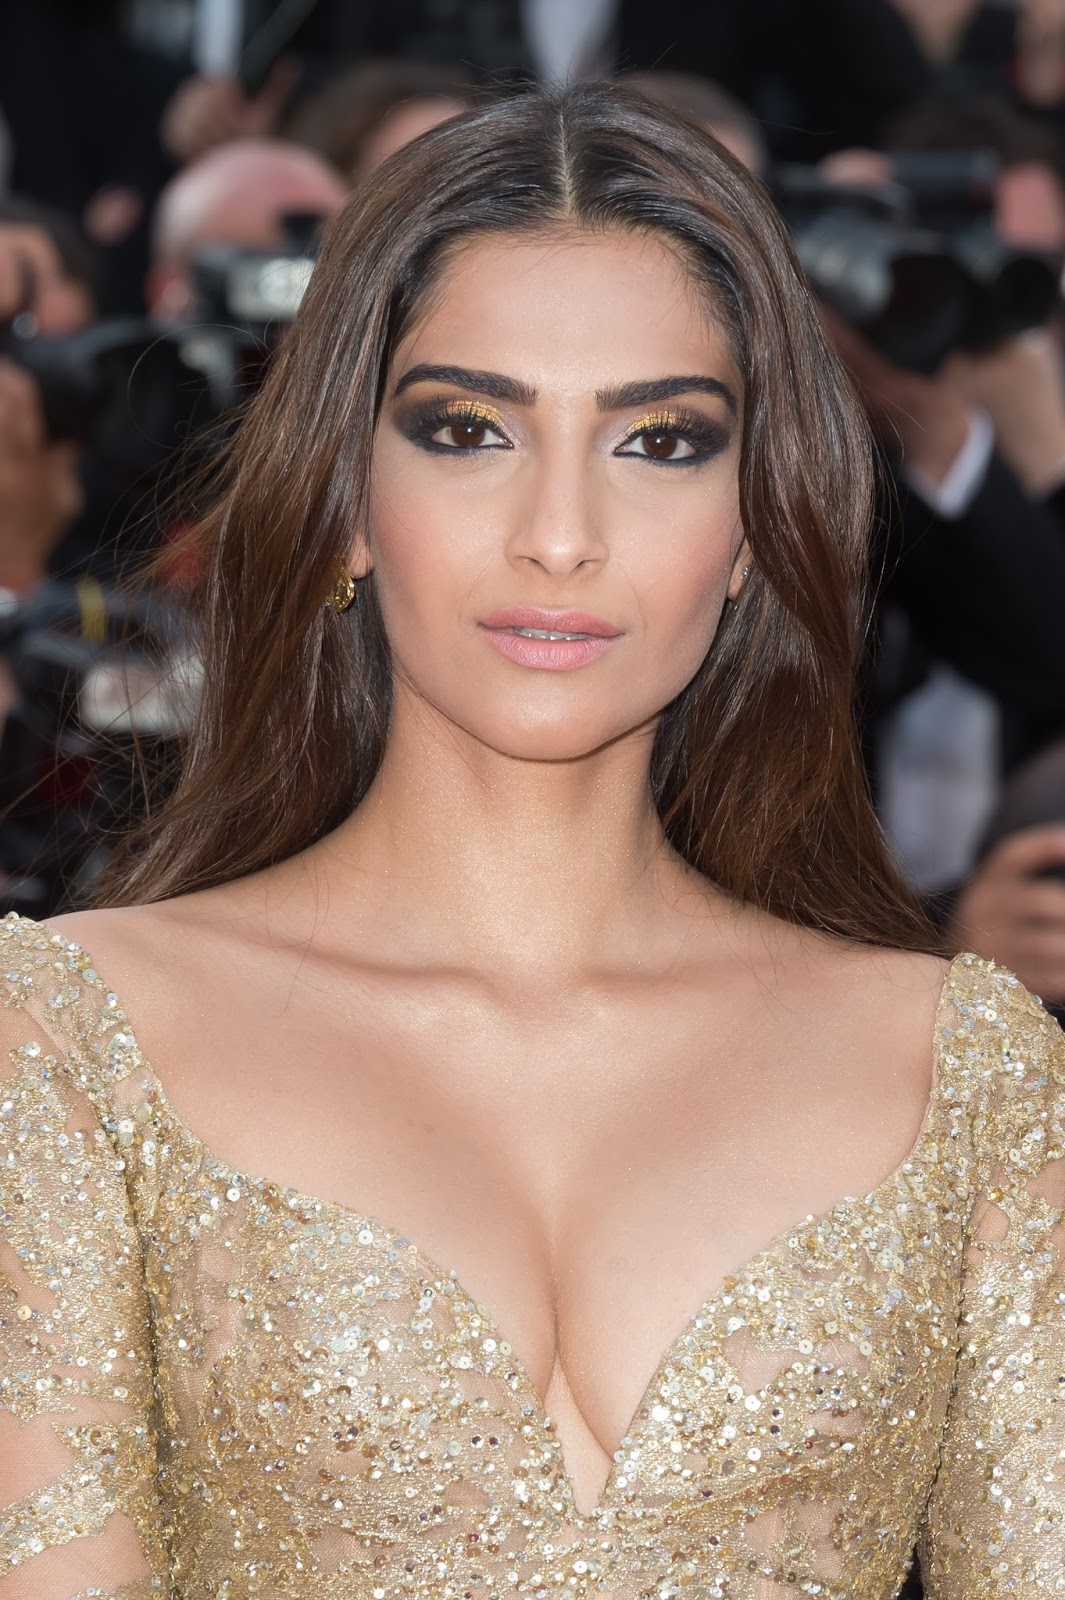 Sonam Kapoor Sexiest Cleavage Show In Elie Saab Couture At -9828